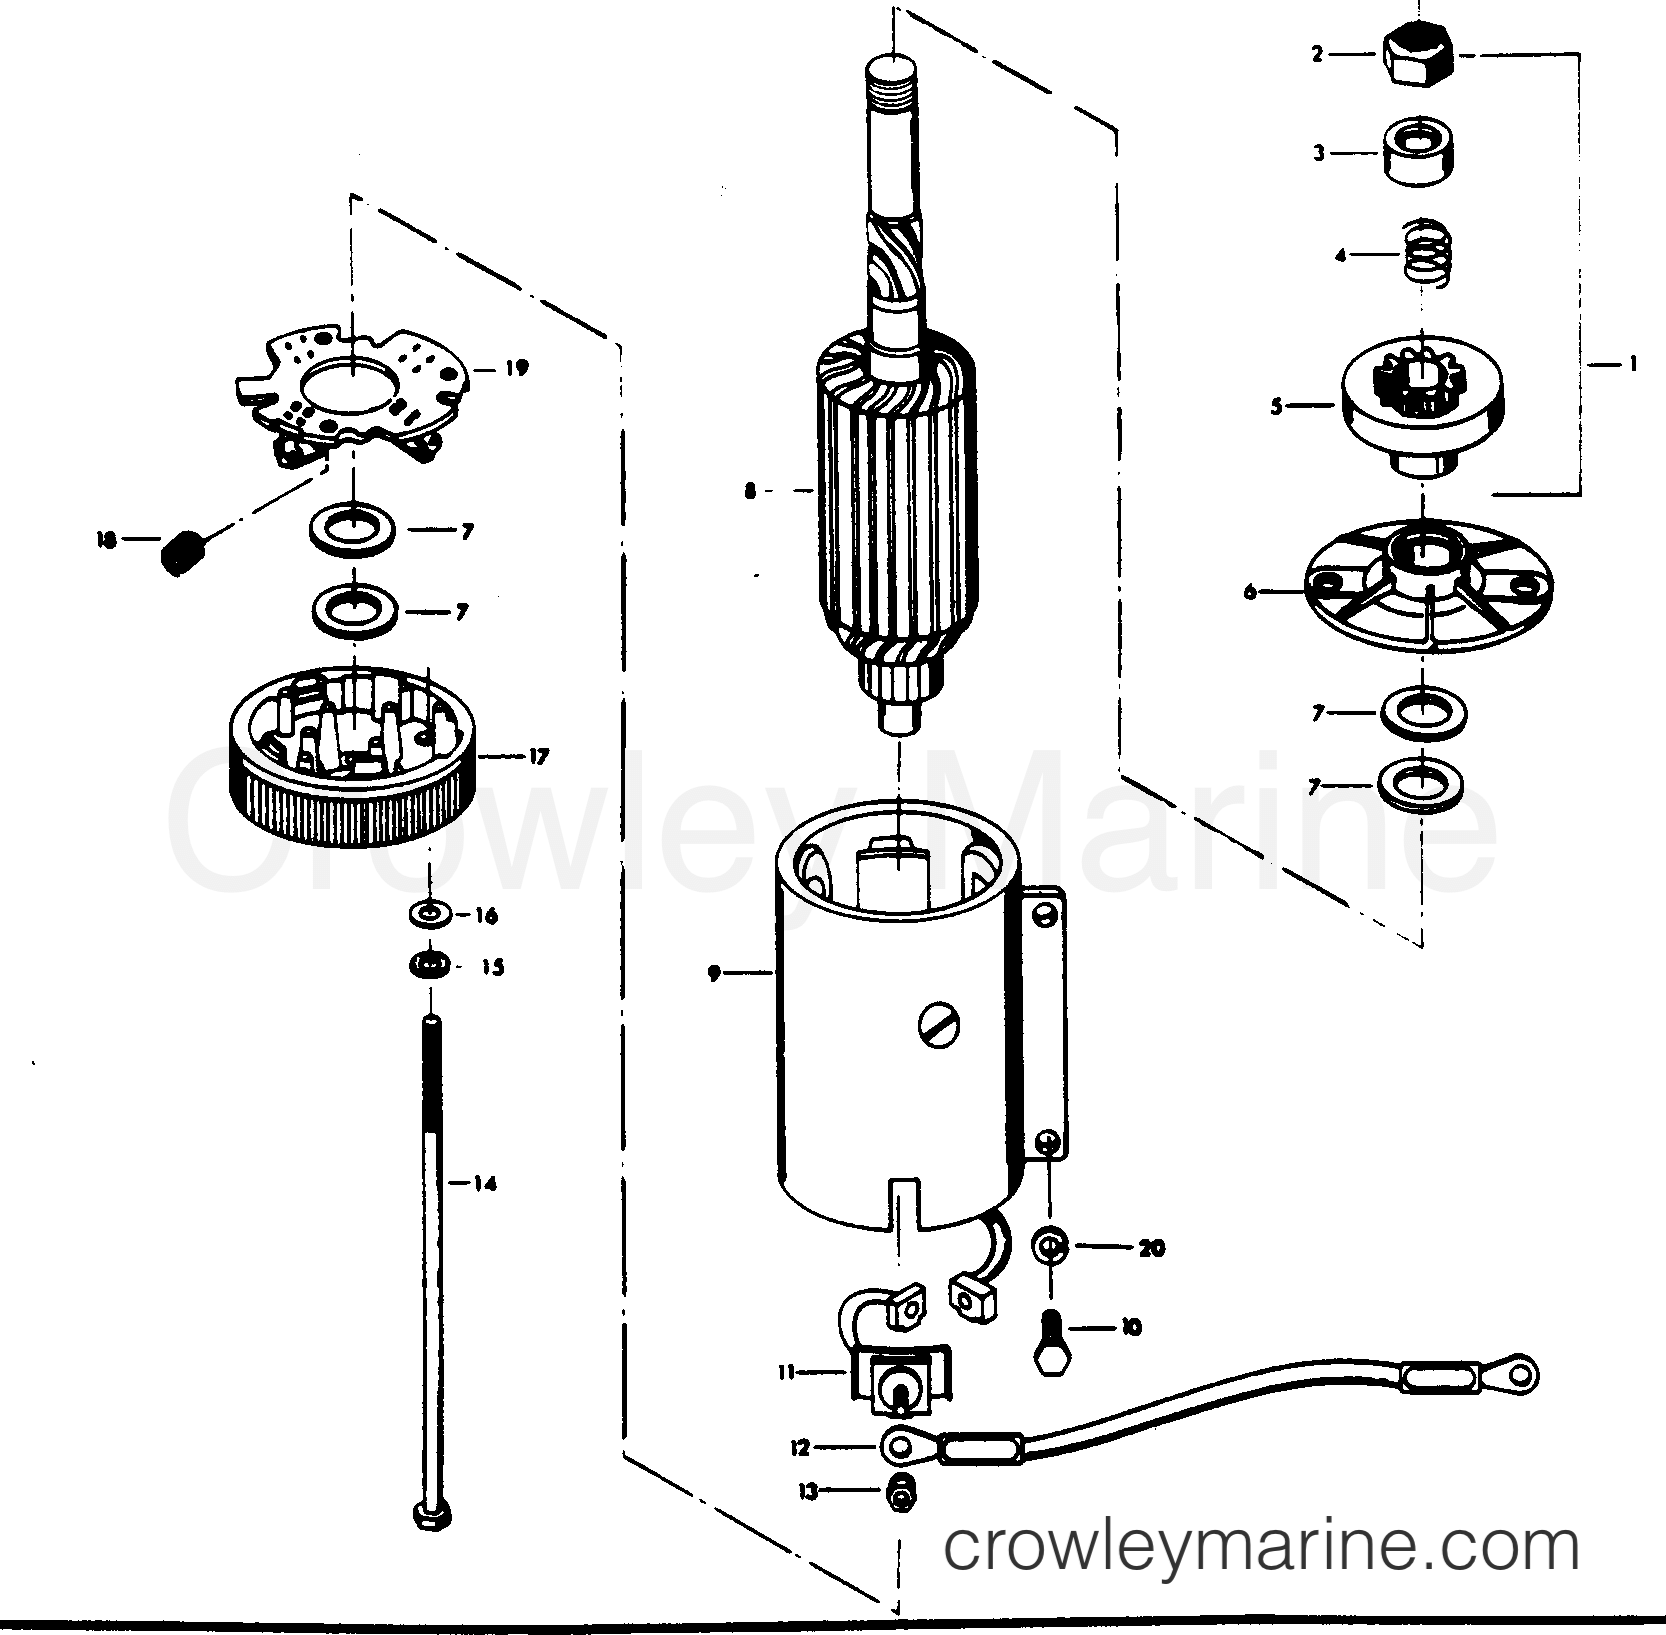 115 1979 mercury chrysler outboard 1151h9a motor leg diagram and